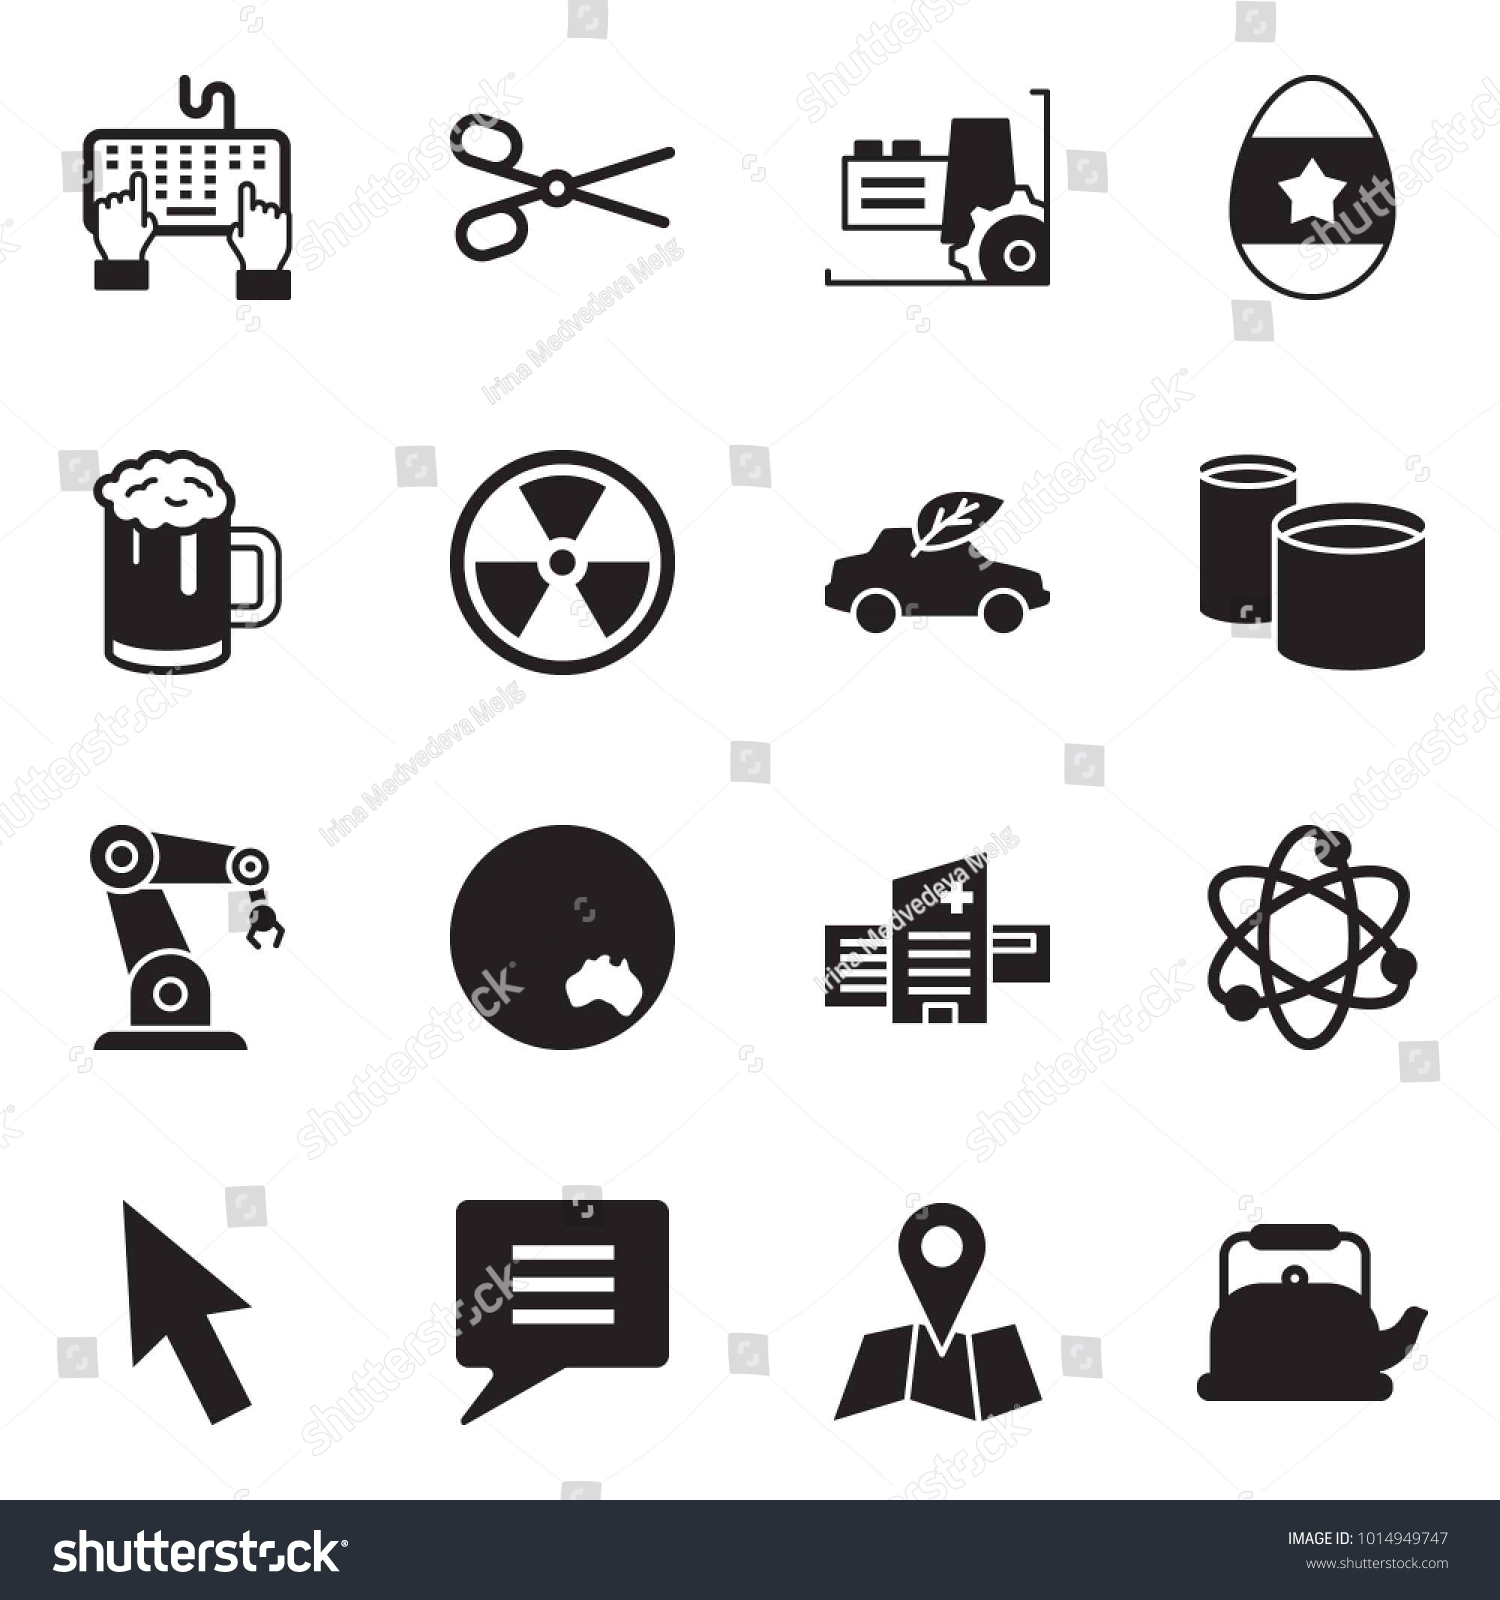 Solid black vector icon set keyboard stock vector 1014949747 solid black vector icon set keyboard hand vector scissors factory easter egg buycottarizona Image collections